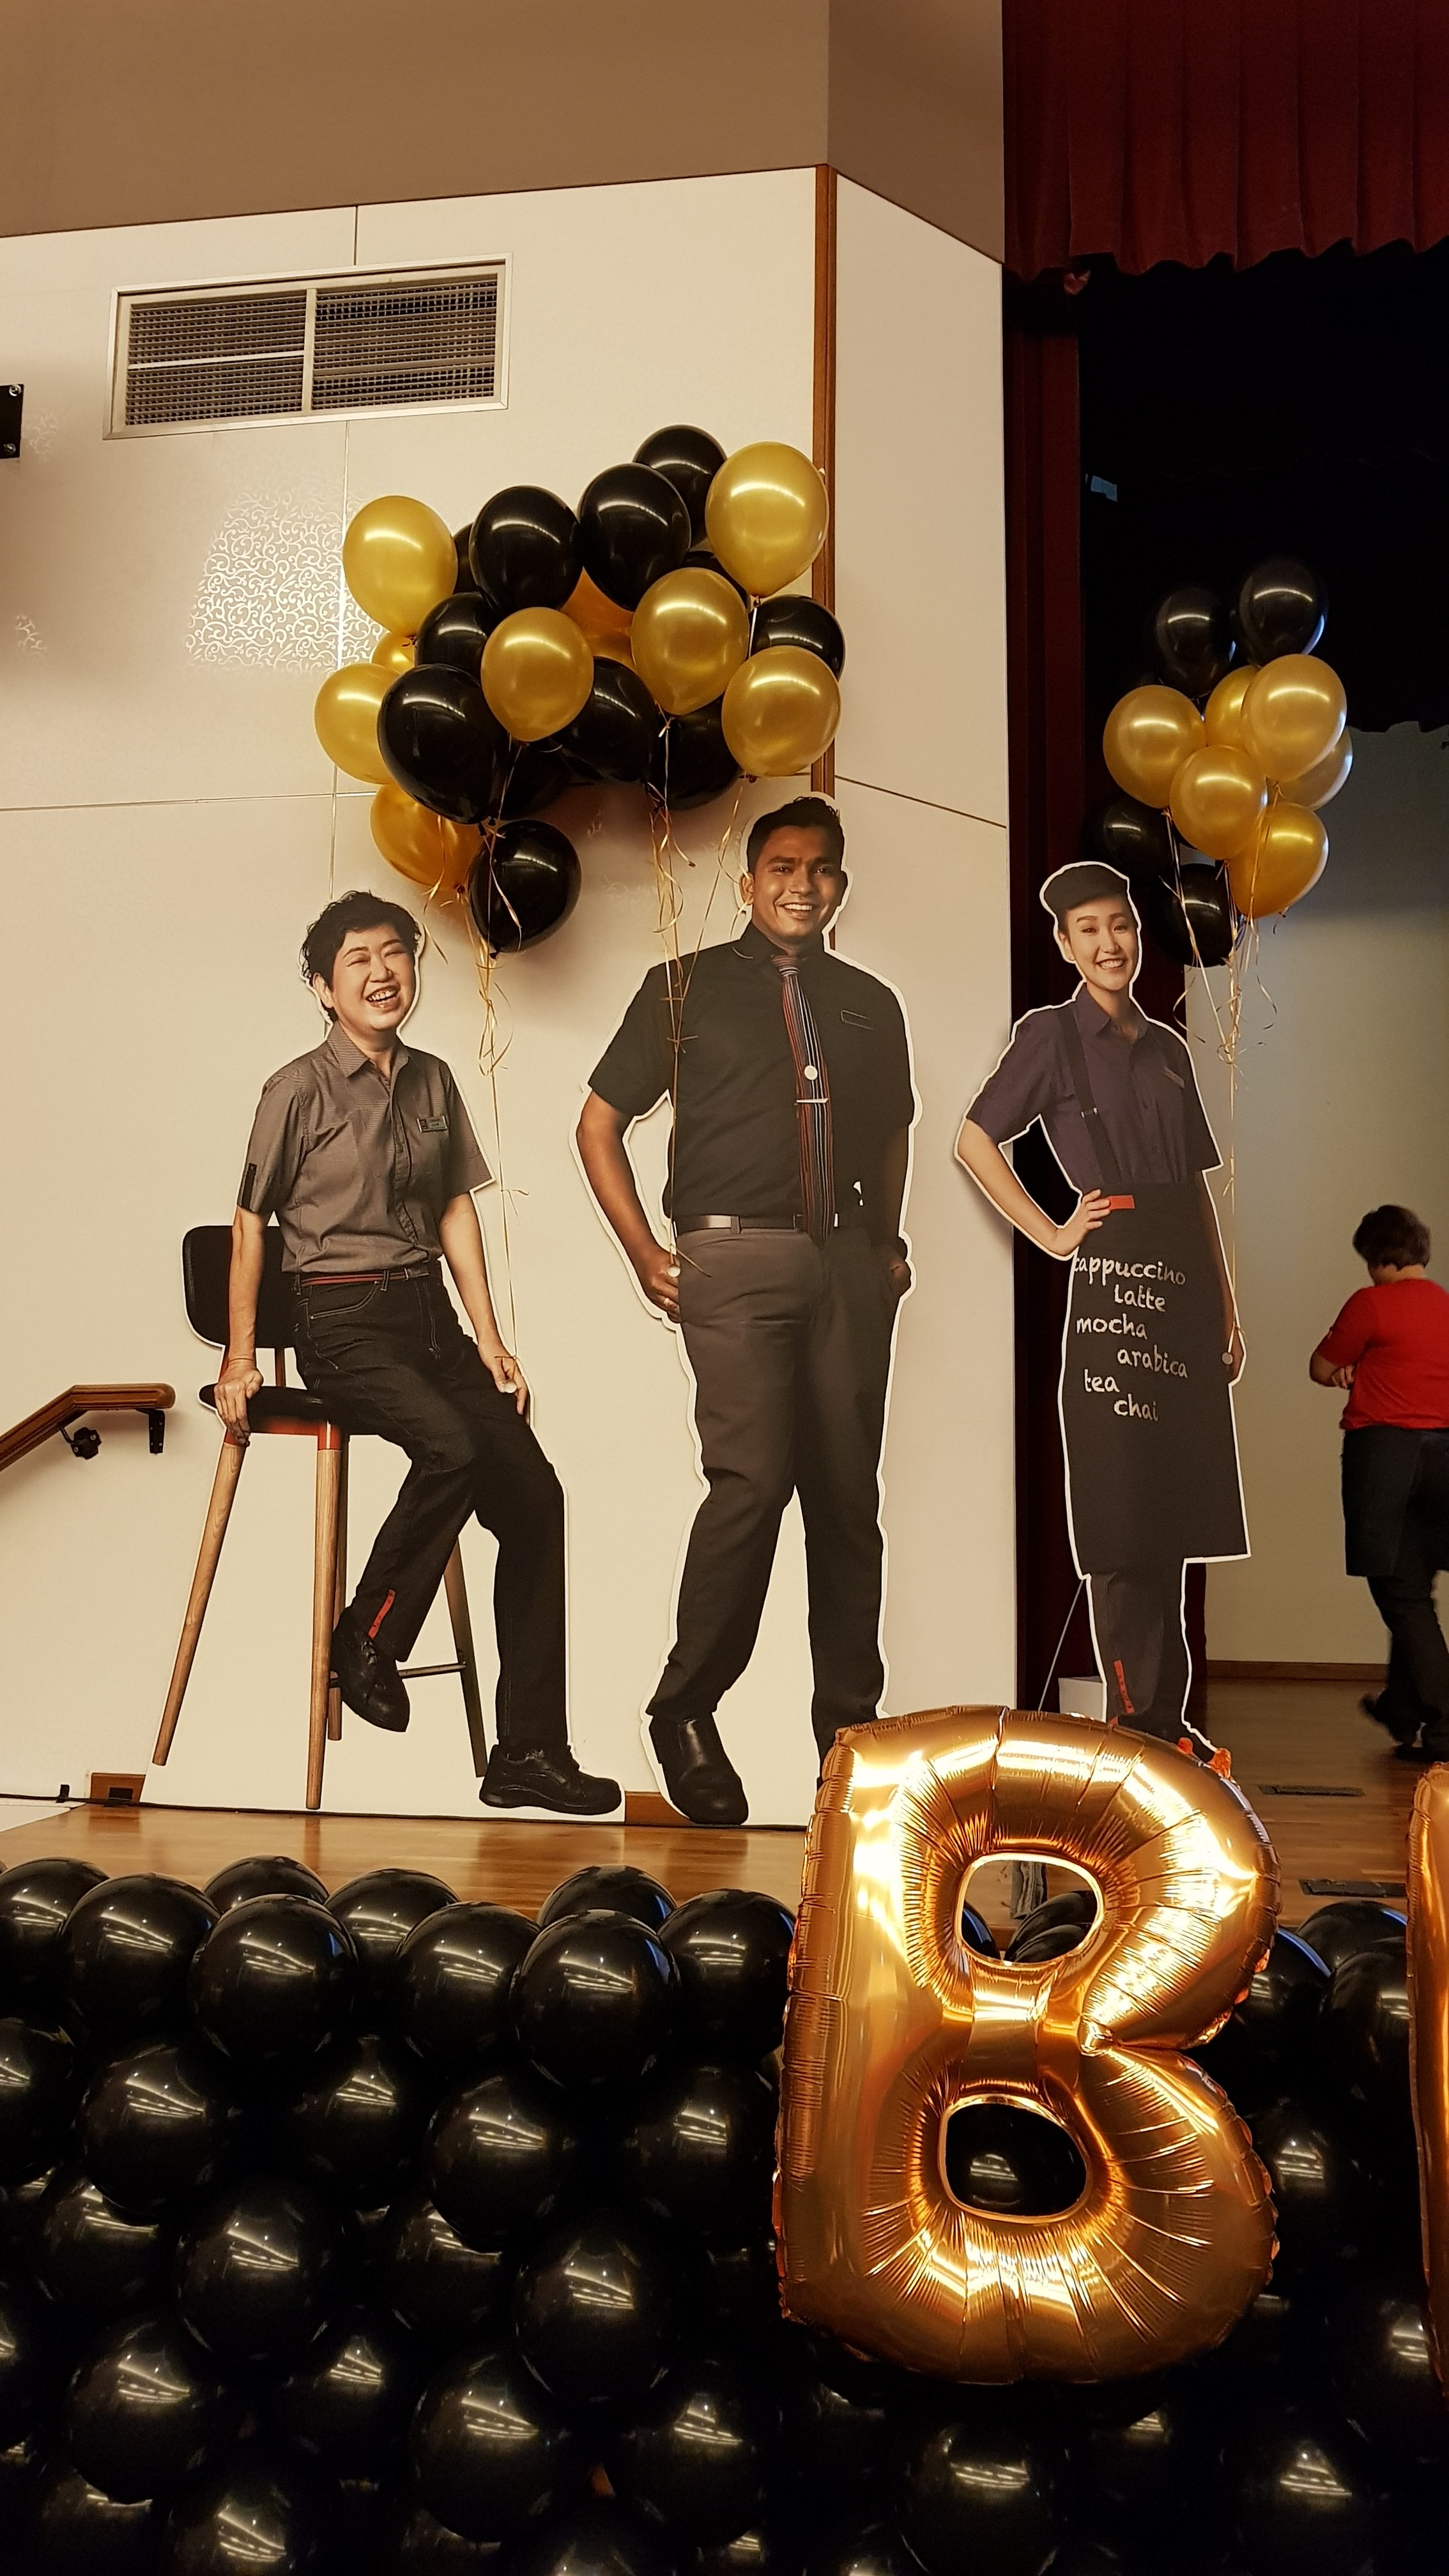 Stage Balloon Decorations For Mcdonalds Award Ceremony